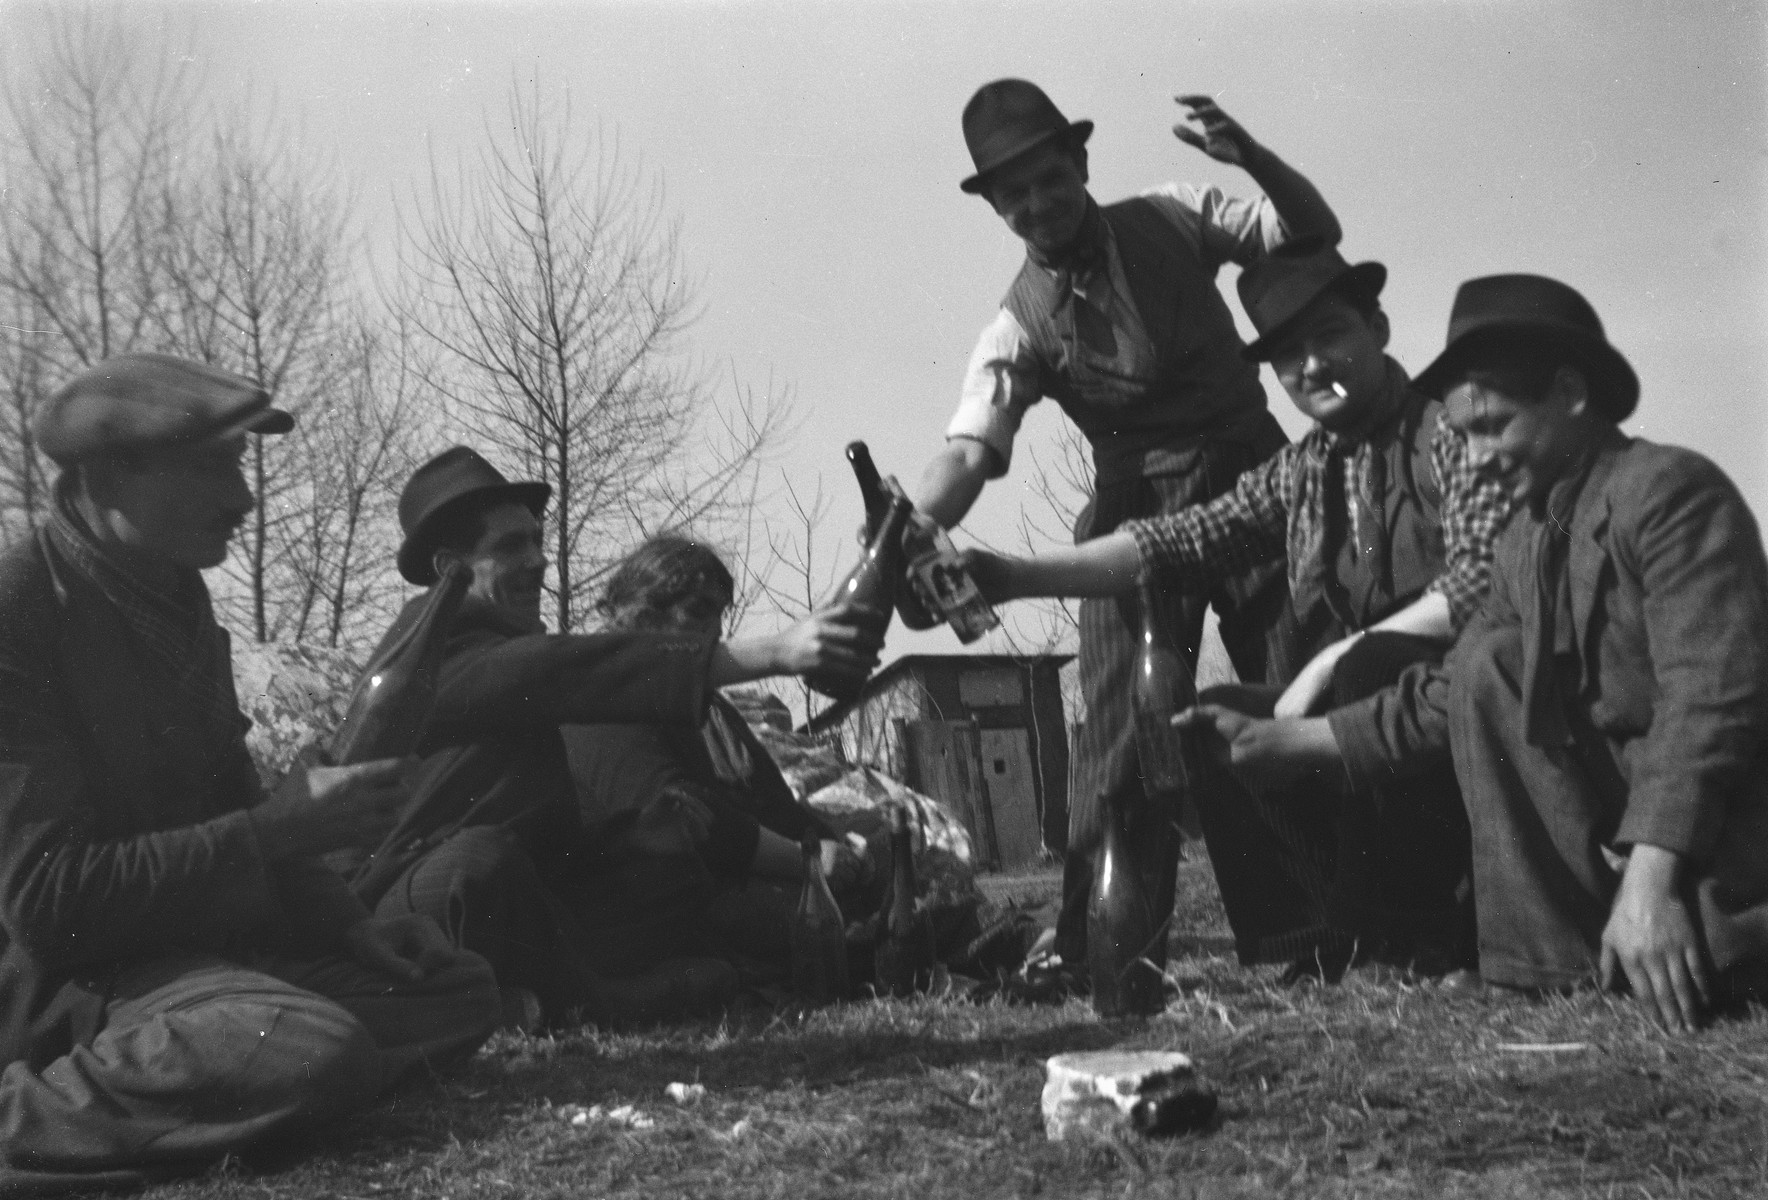 A group of Roma (Gypsy) men lift bottles in a toast.